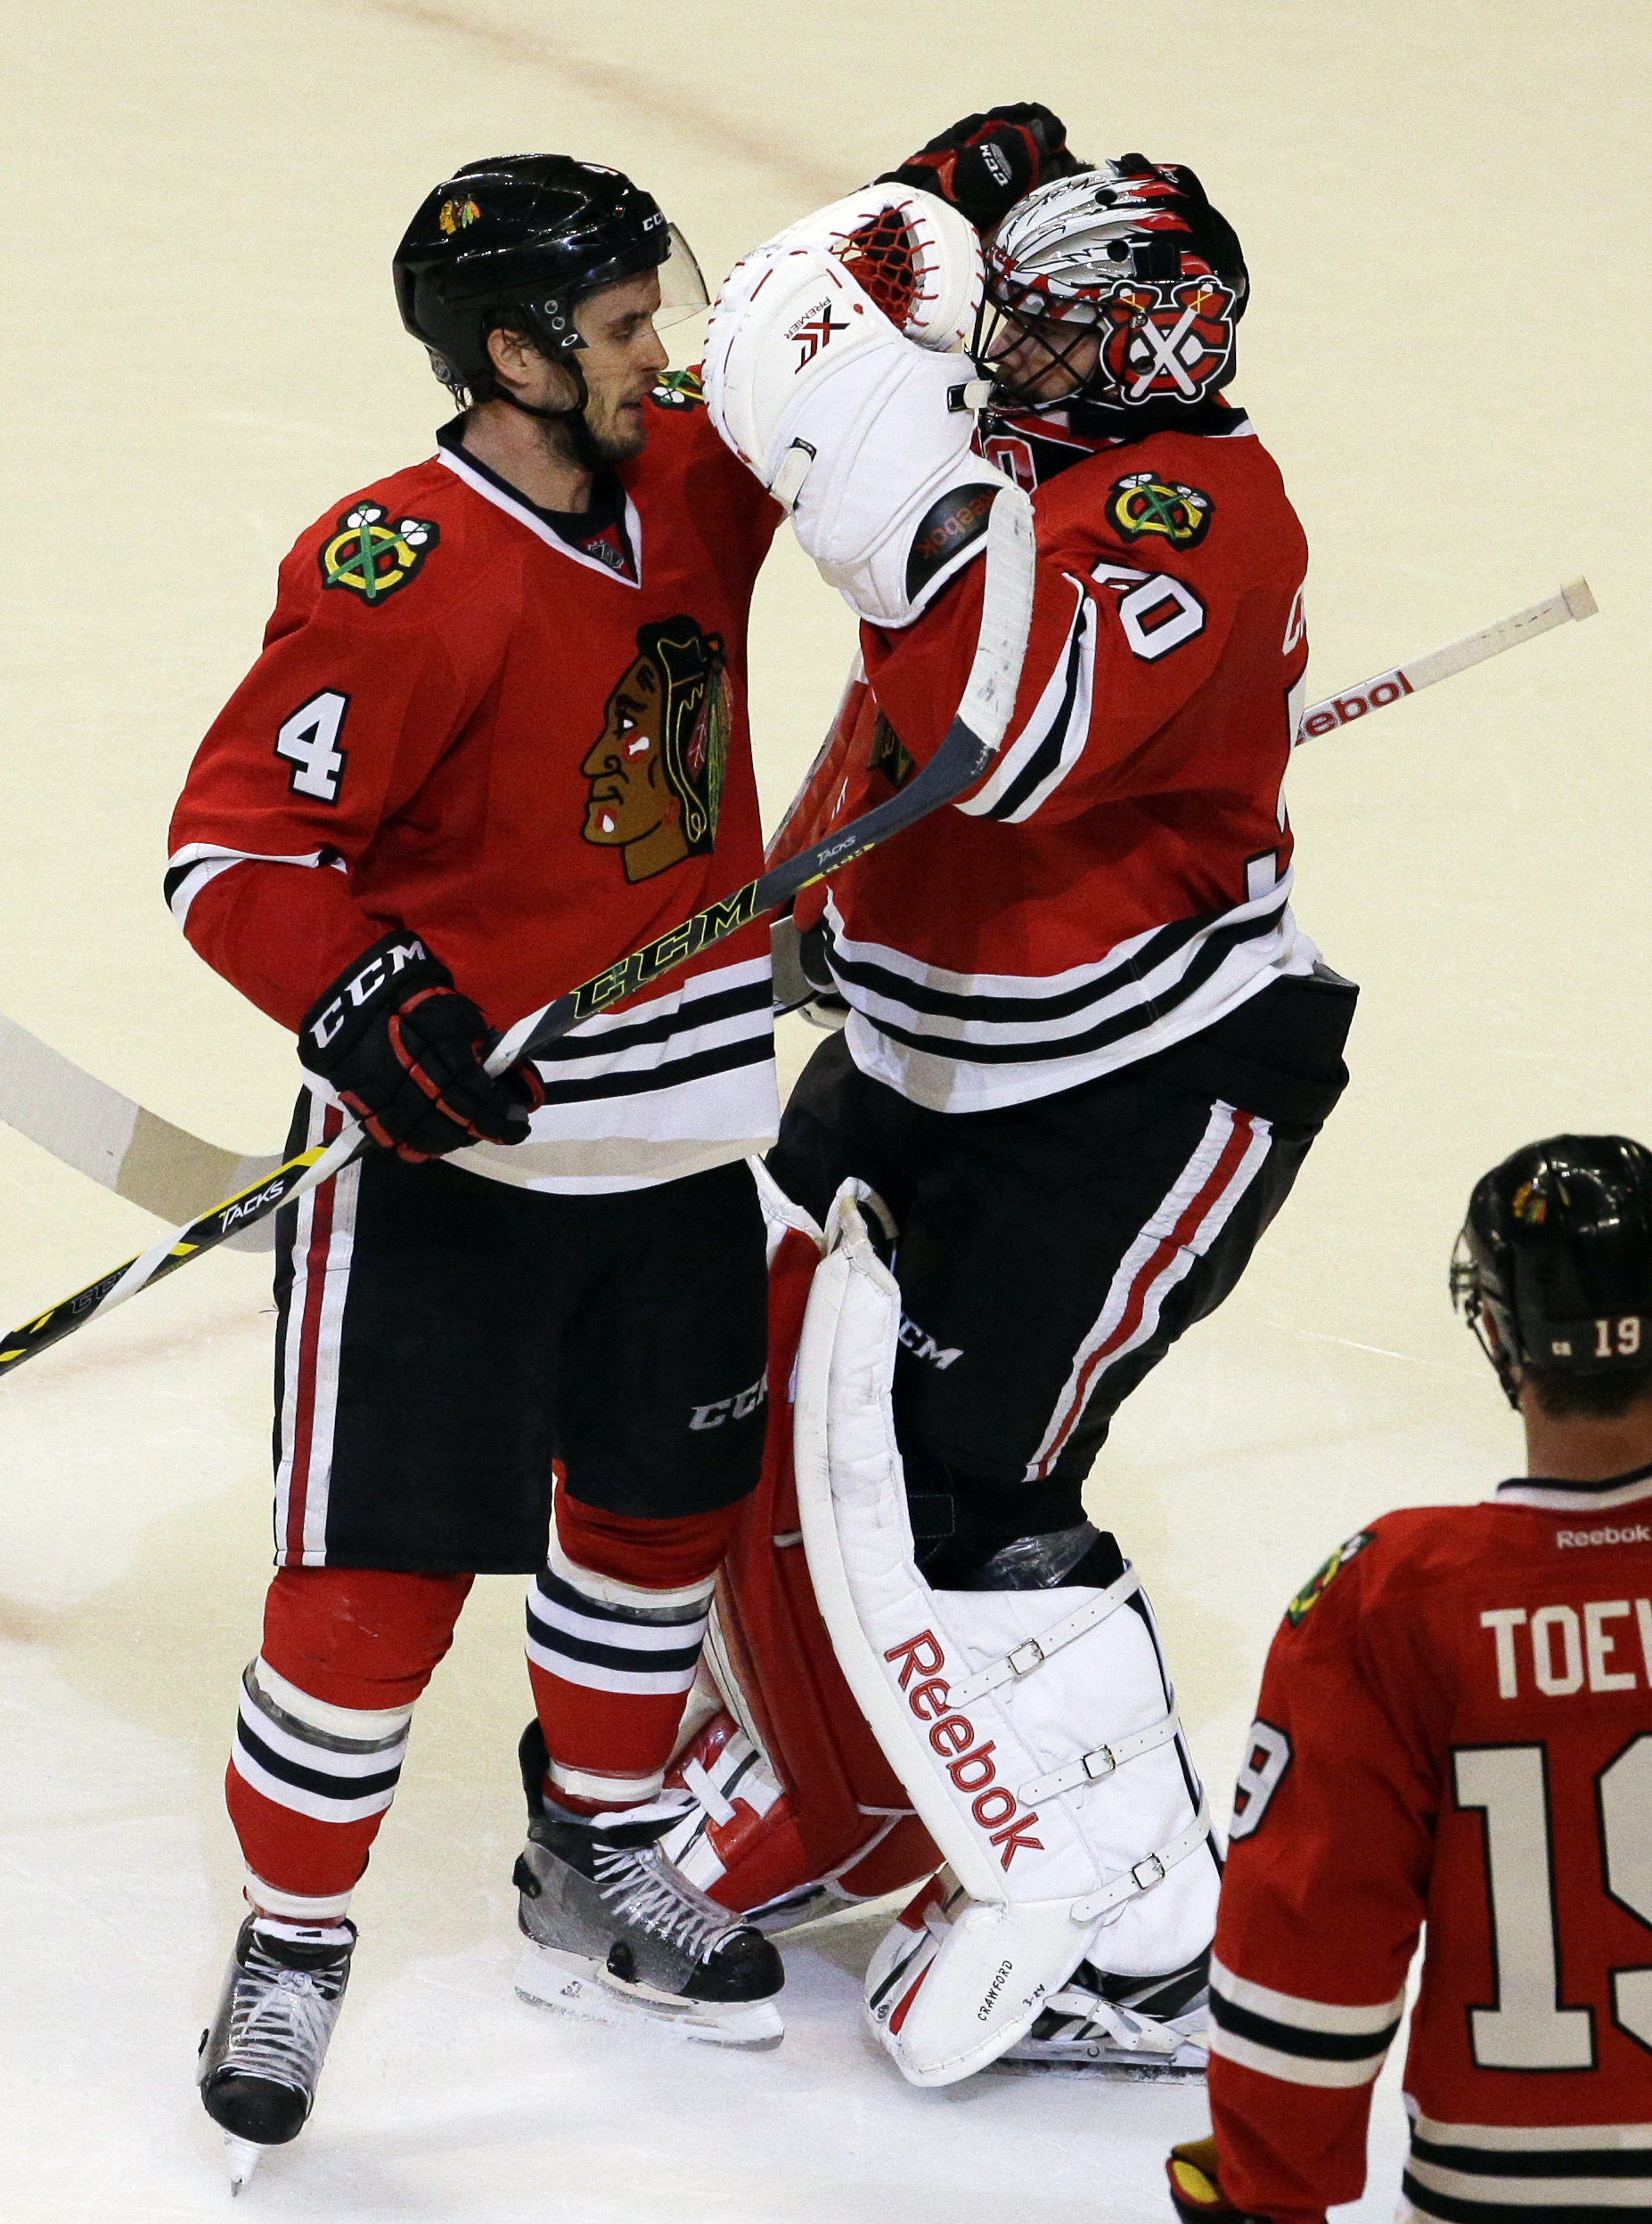 Chicago Blackhawks defenseman Niklas Hjalmarsson, left, celebrates with goalie Corey Crawford after the Blackhawks defeated the Minnesota Wild 4-3 during Game 1 in the second round of the NHL Stanley Cup hockey playoffs in Chicago, Friday, May 1, 2015. (A